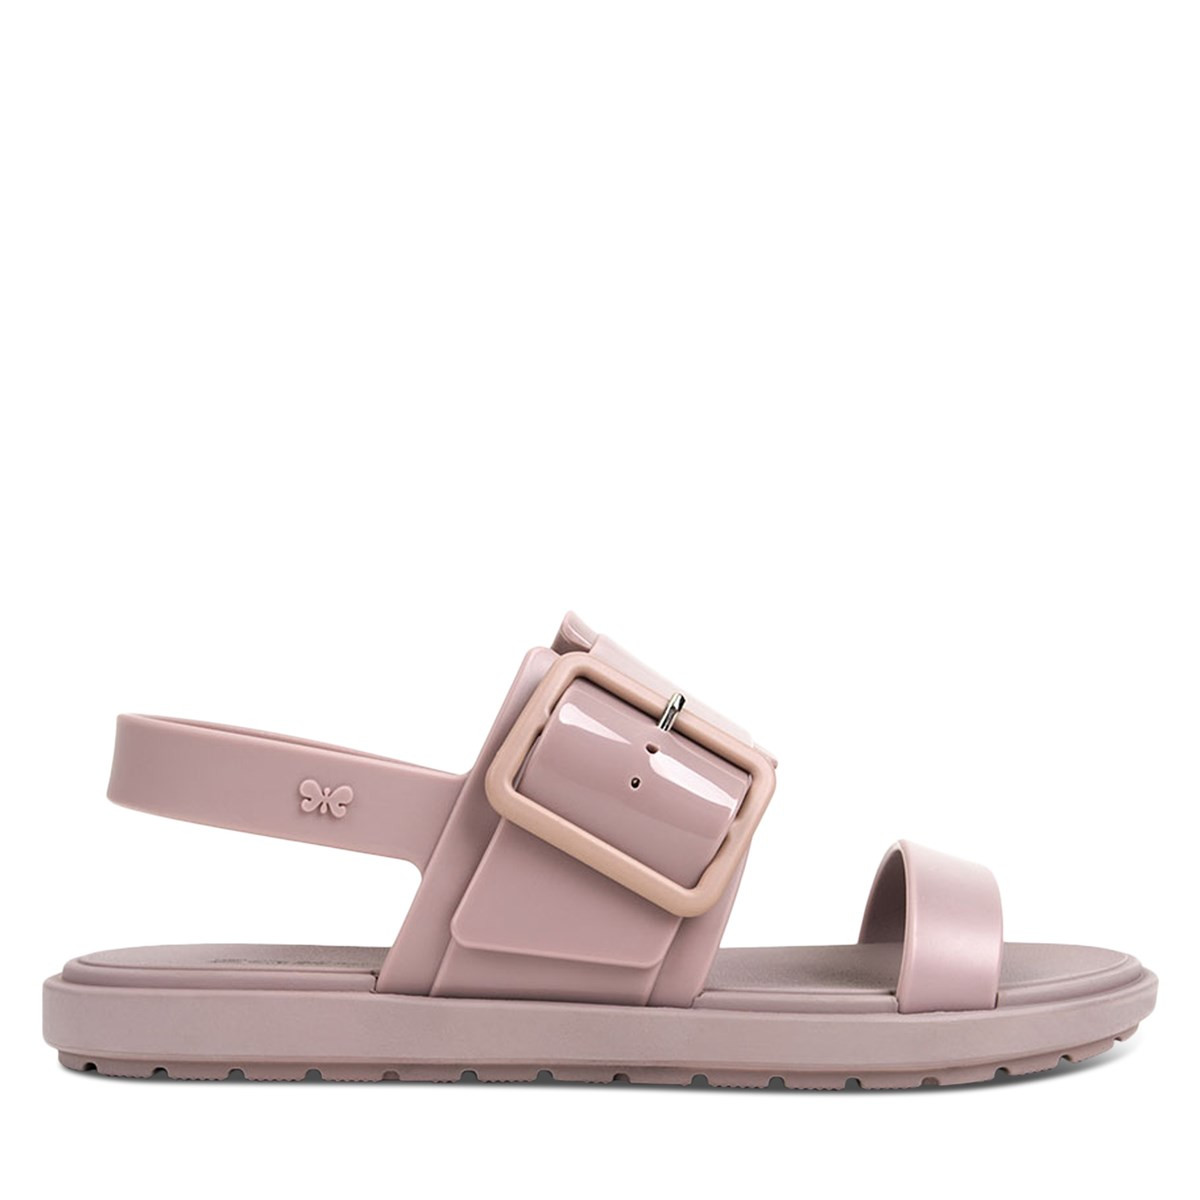 Women's Rush Sandals in Nude